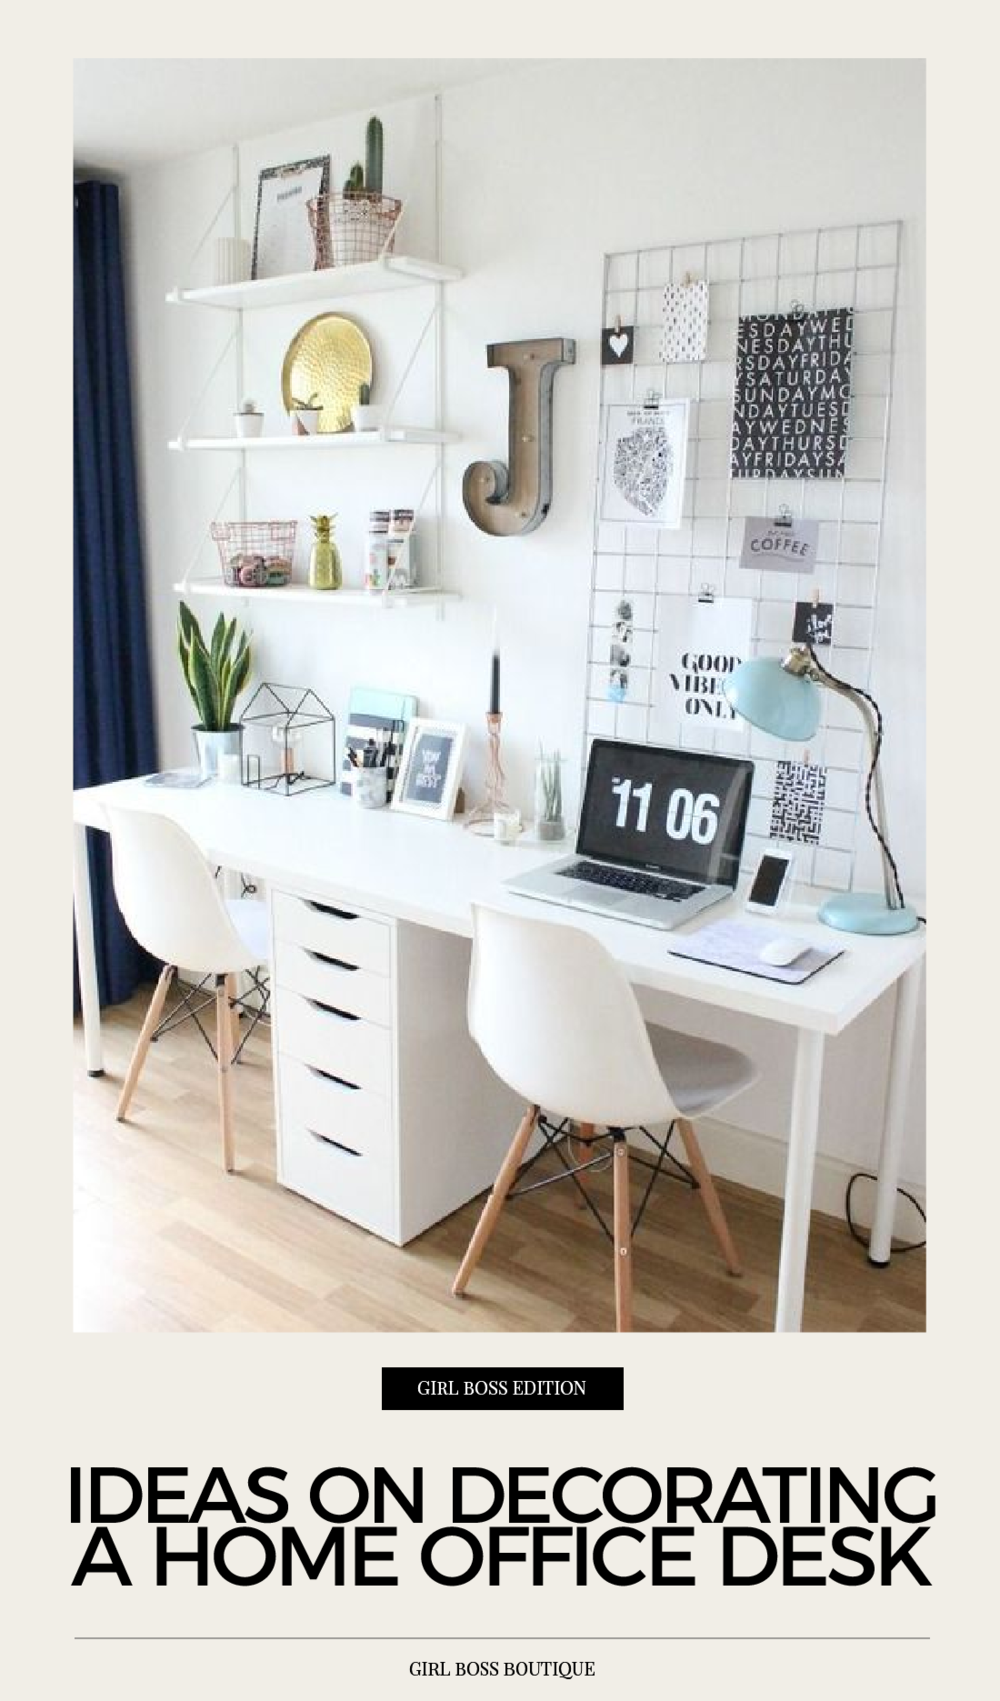 Superieur Ideas On Decorating A Home Office Desk. You Know How They Say Leave Your  Work